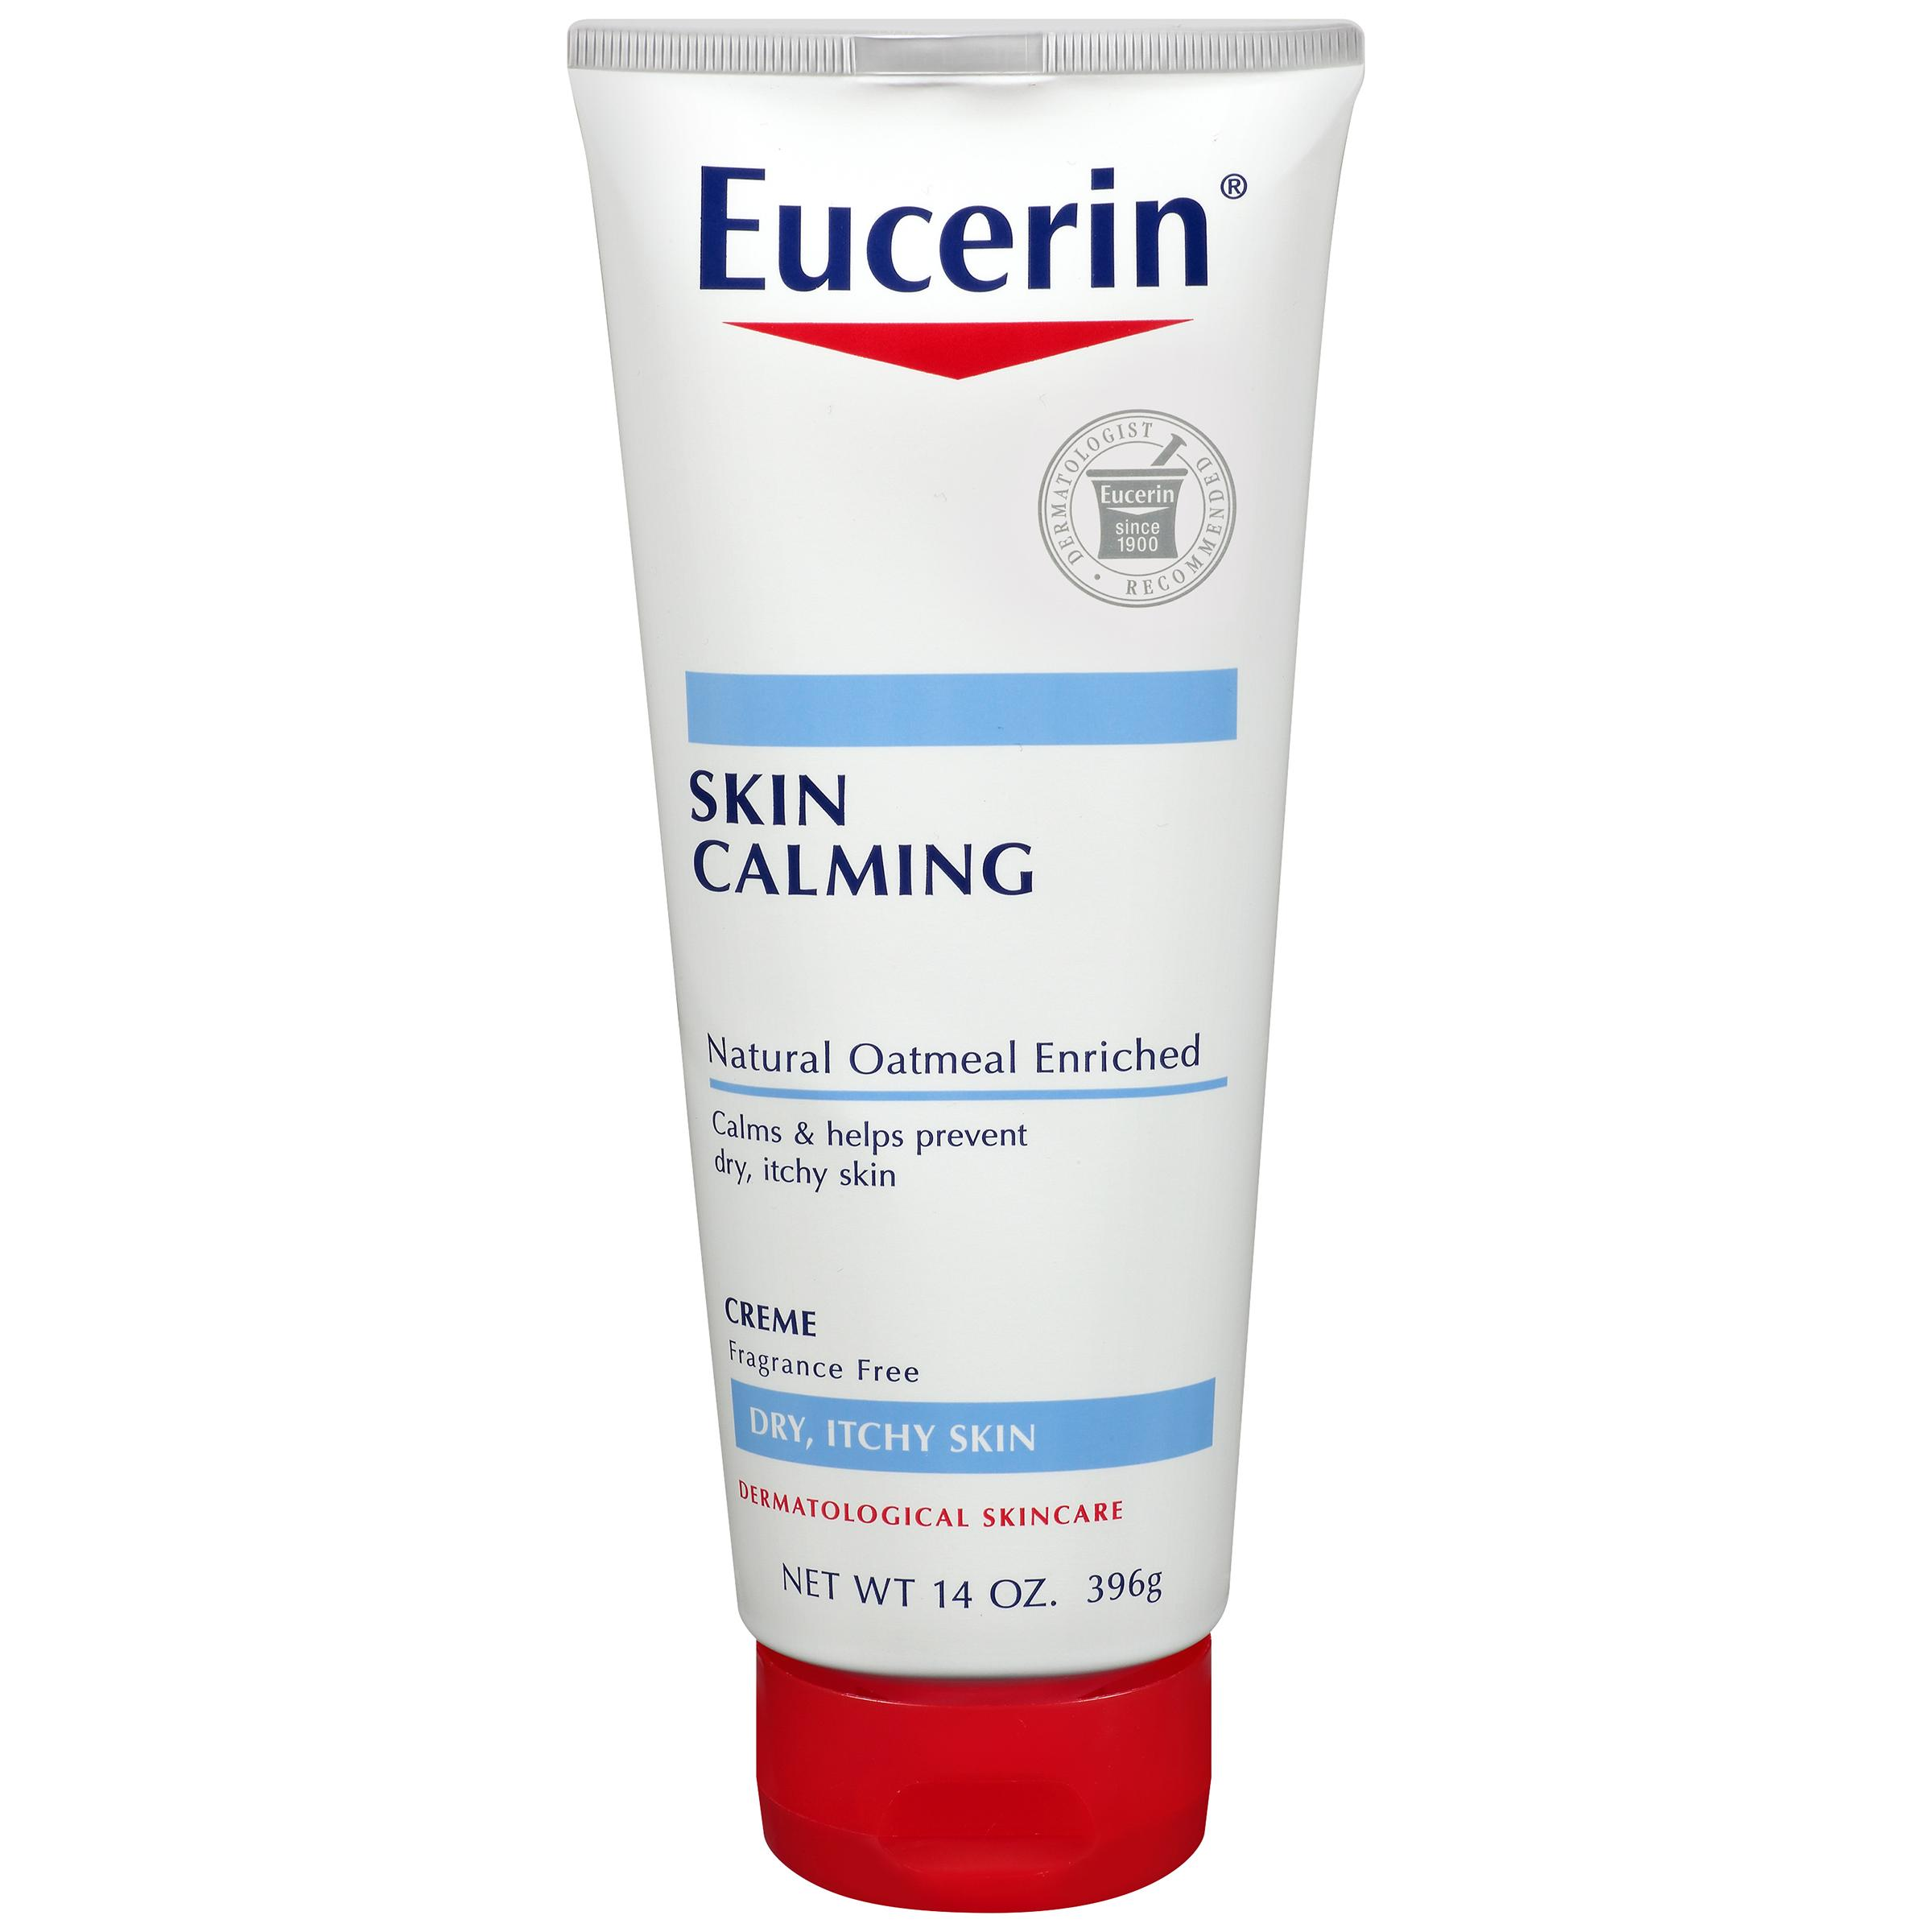 eucerin skin calming daily moisturizing creme reviews